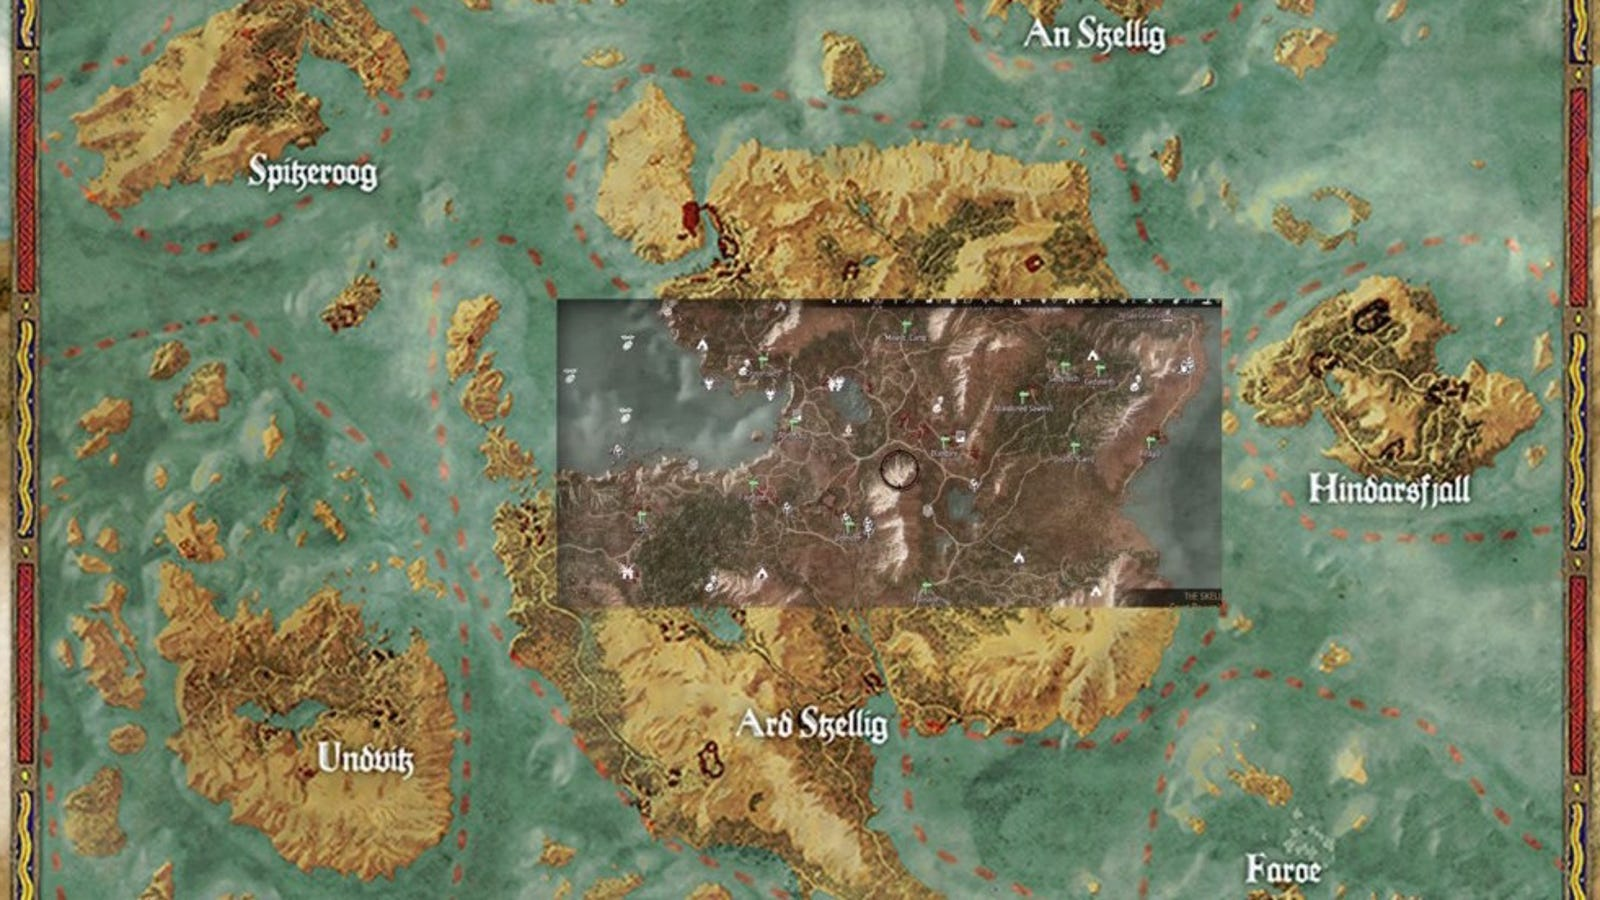 El mapa de The Witcher 3 es gigantesco: RDR, GTA V y Skyrim combinados